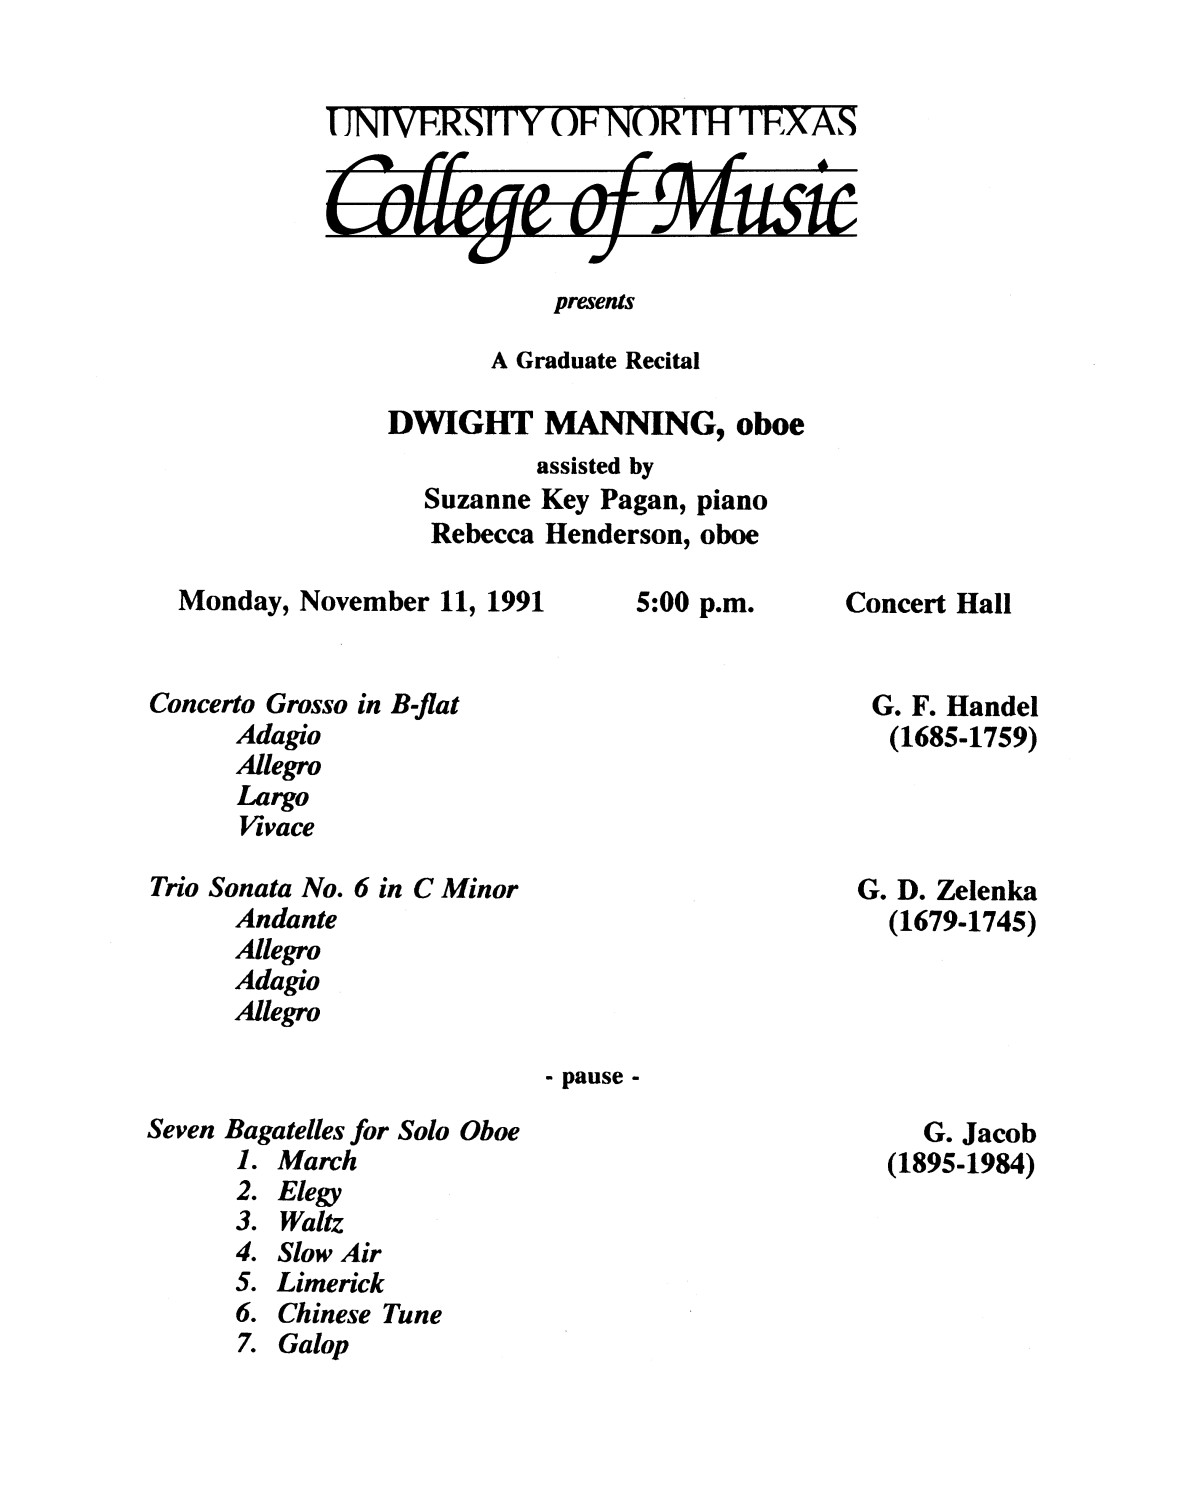 College of Music program book 1991-1992 Student Performances Vol. 2                                                                                                      [Sequence #]: 46 of 310